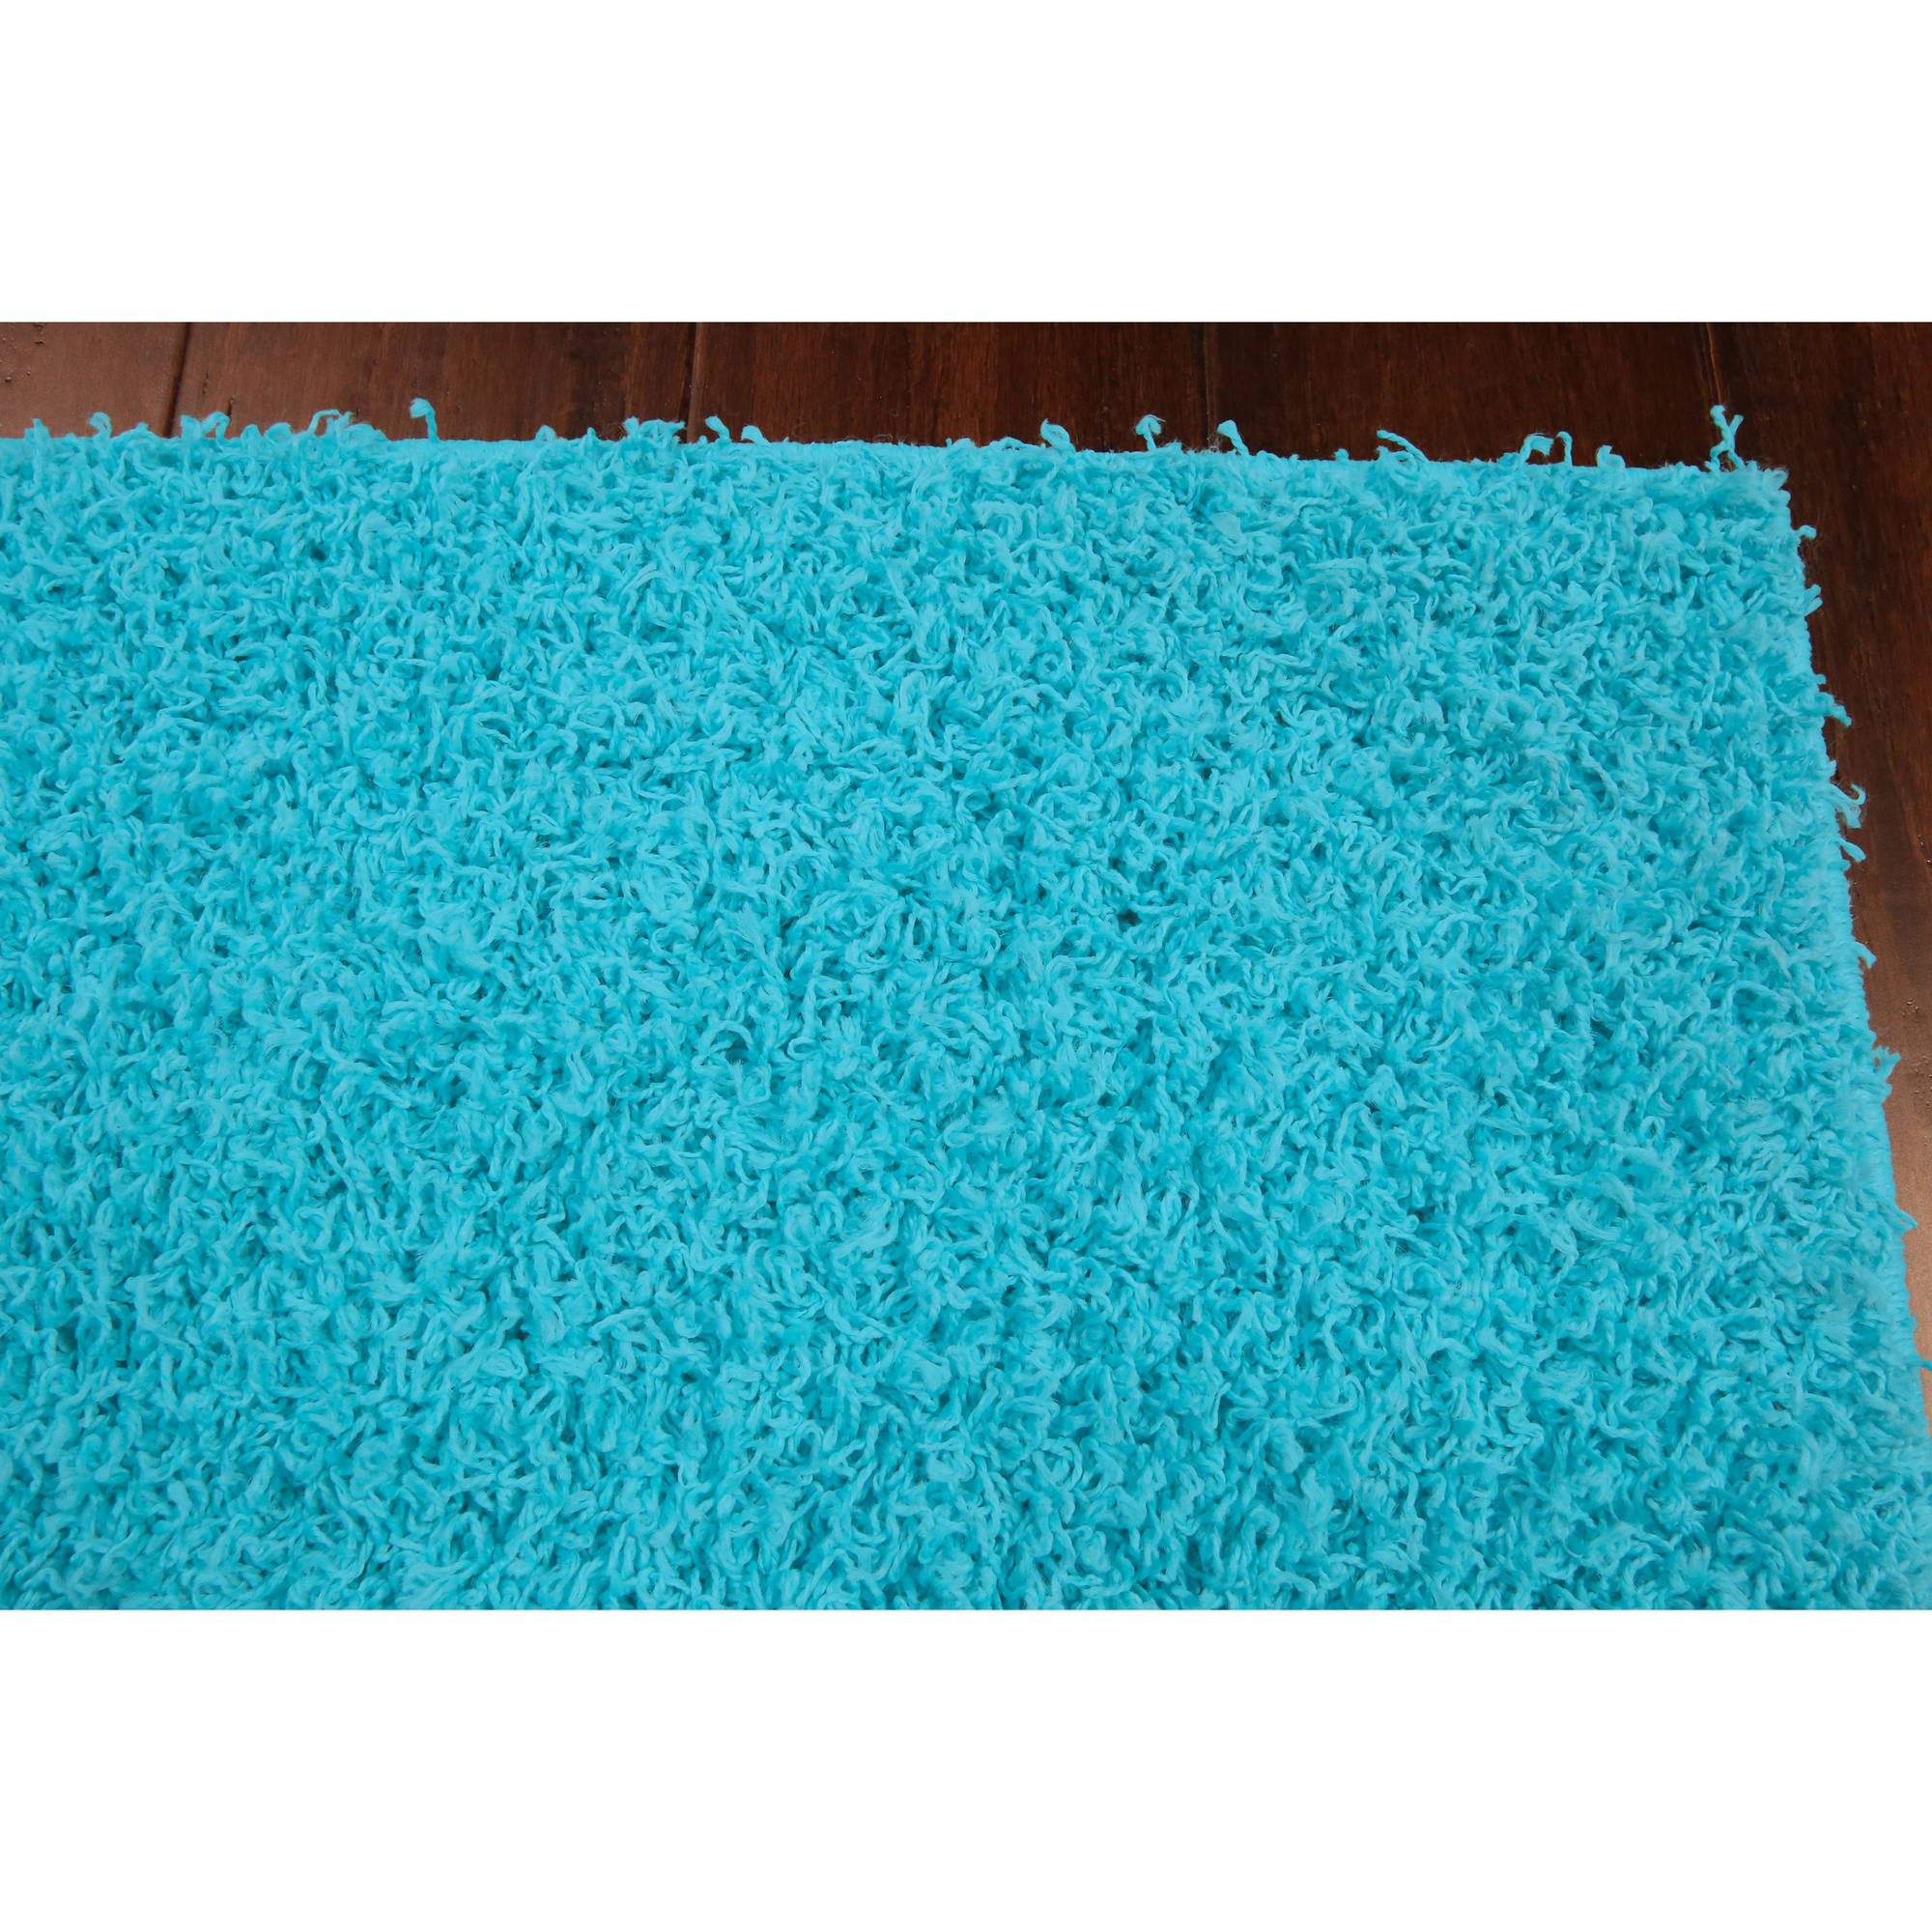 Your Zone Solid Shag Rug Available In Multiple Sizes And Colors Image 2 Of 3